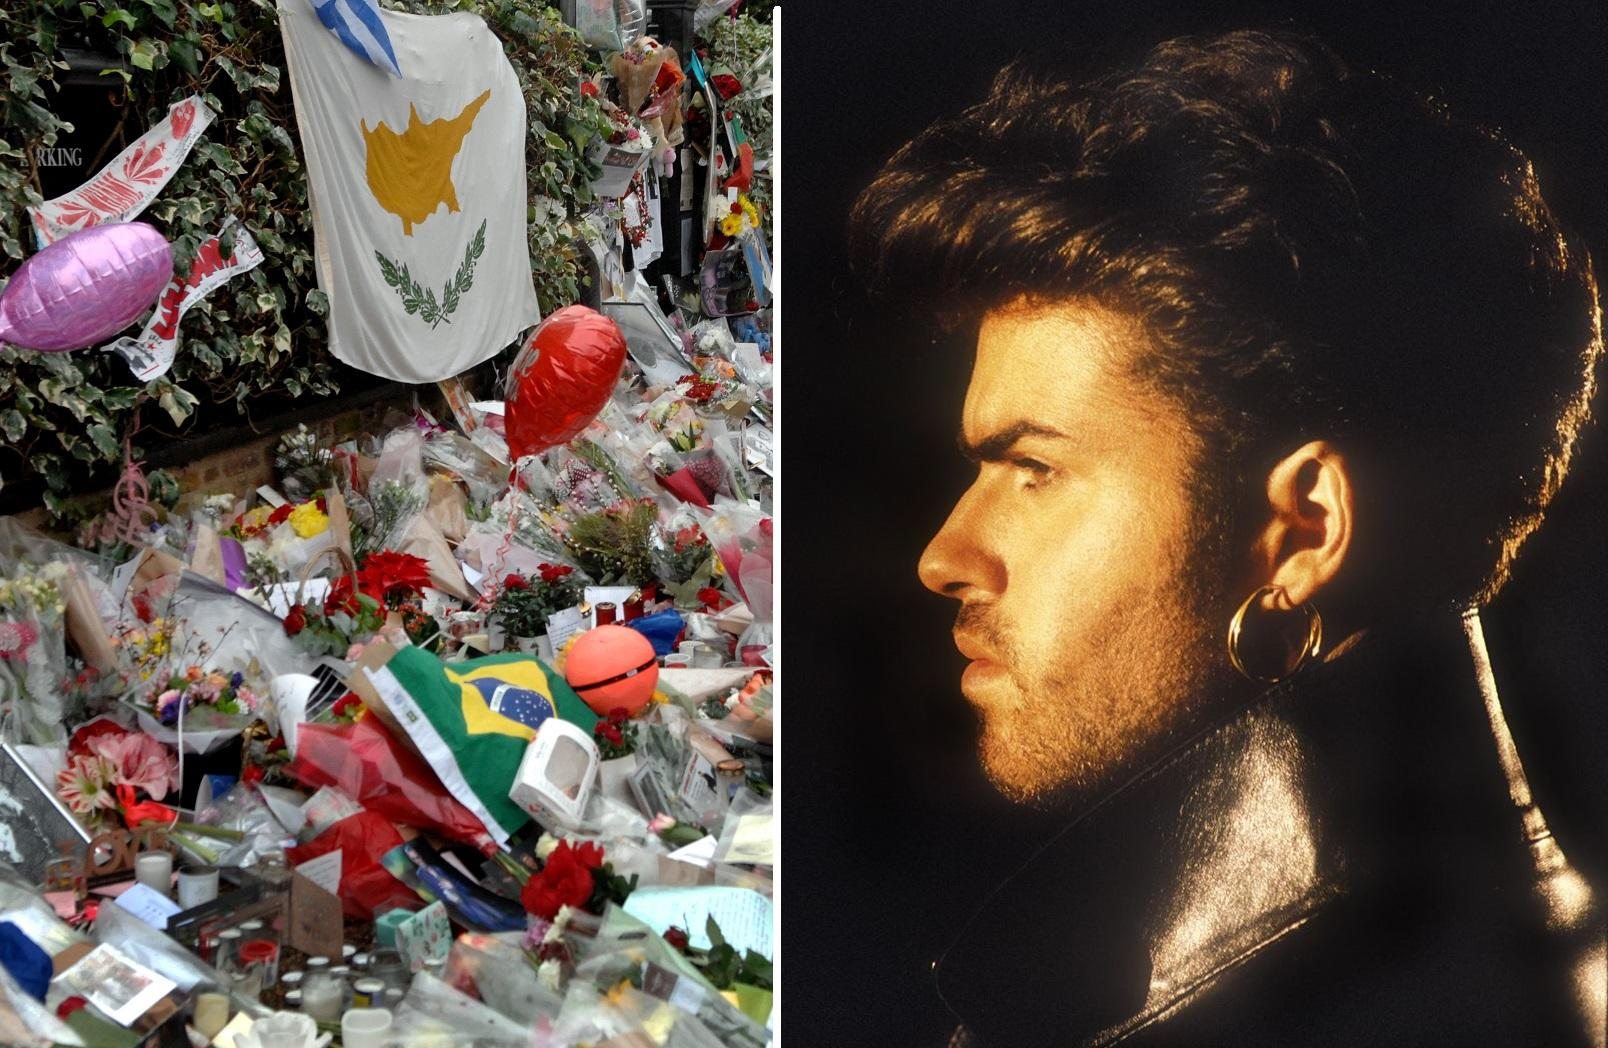 Fans Set Up Memorial To George Michael 12 Months After Death